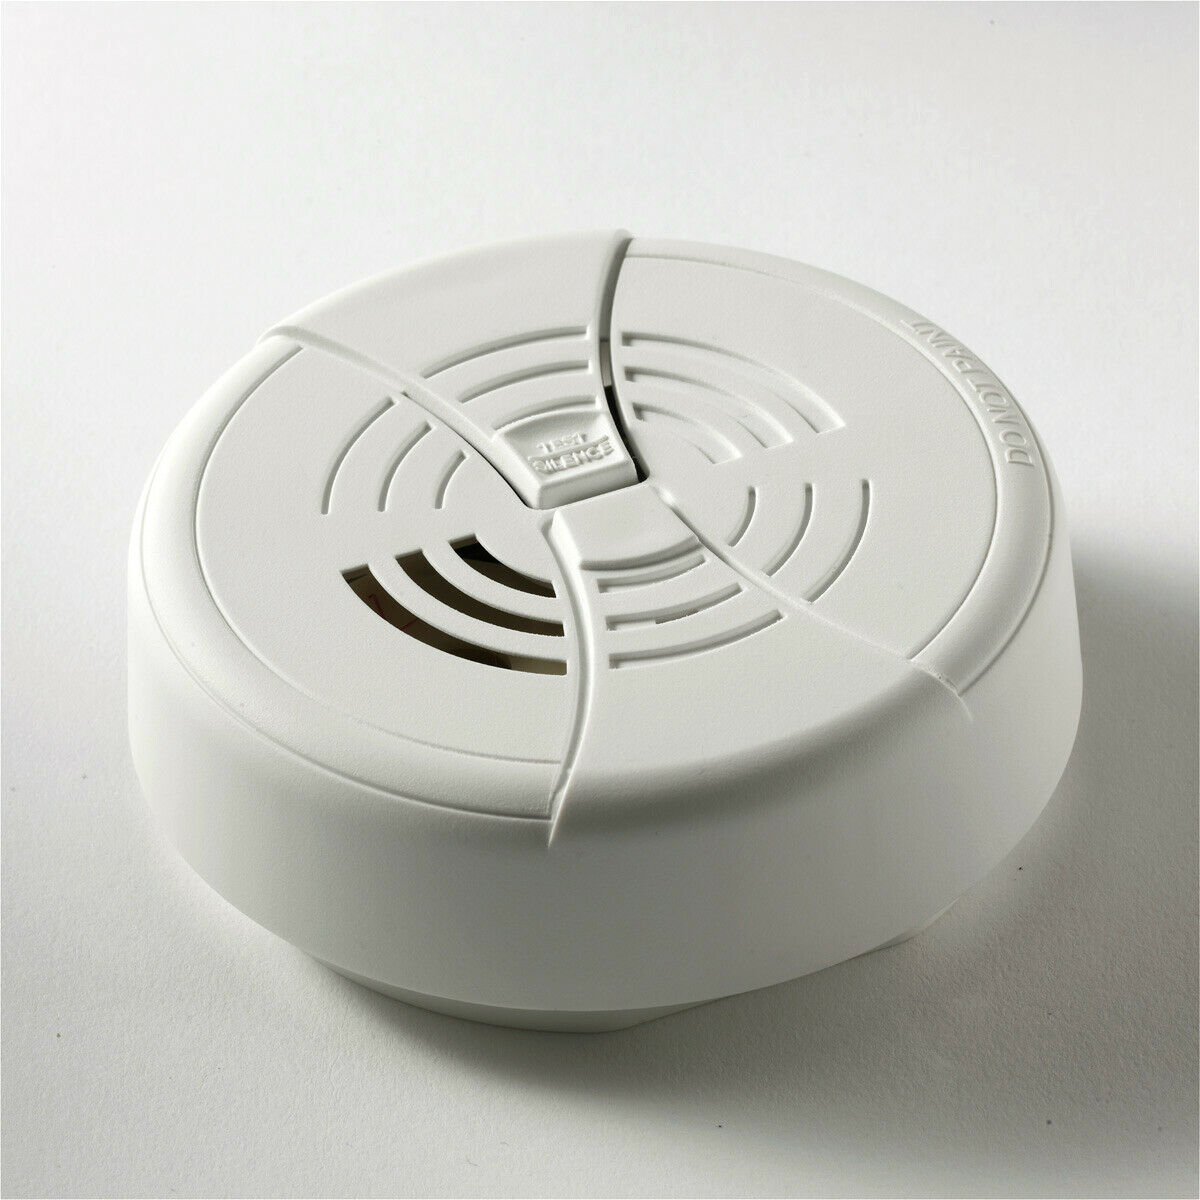 FIRST ALERT FG250LB Smoke Alarm, Ionization, Lithium